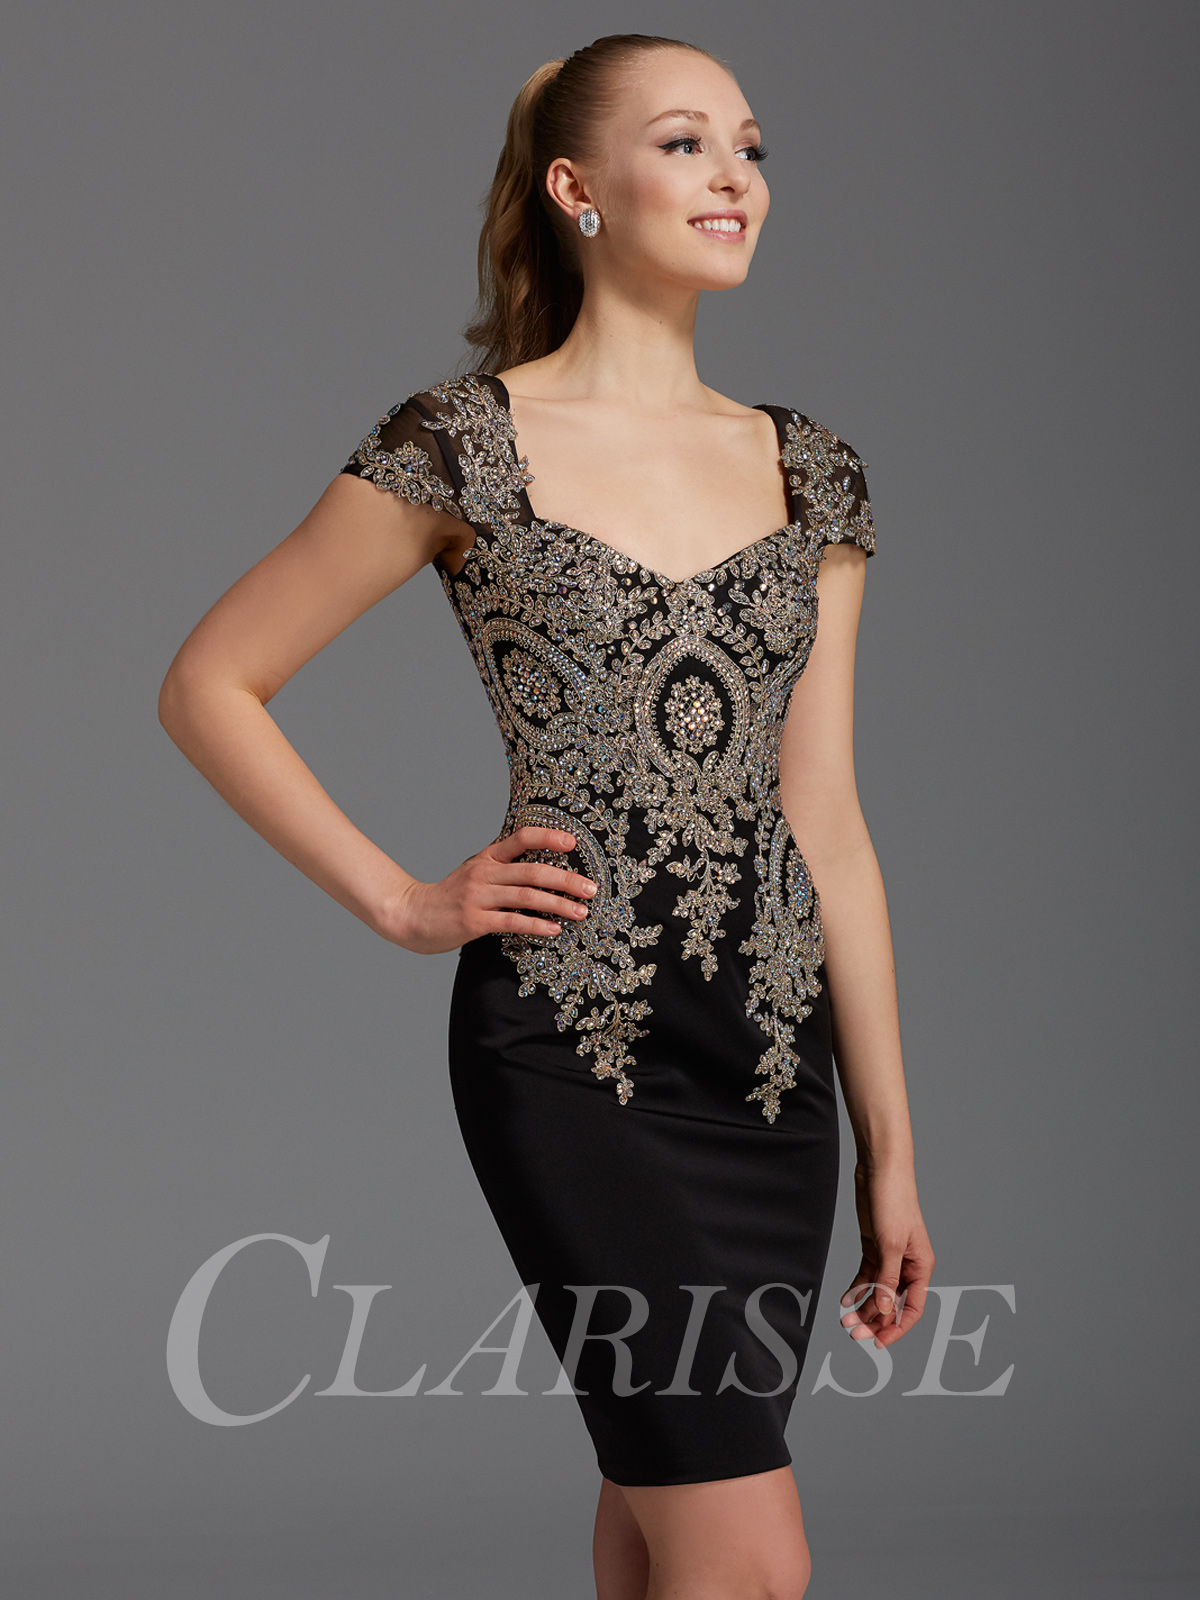 Clarisse Cocktail Dress 2942 | Promgirl.net